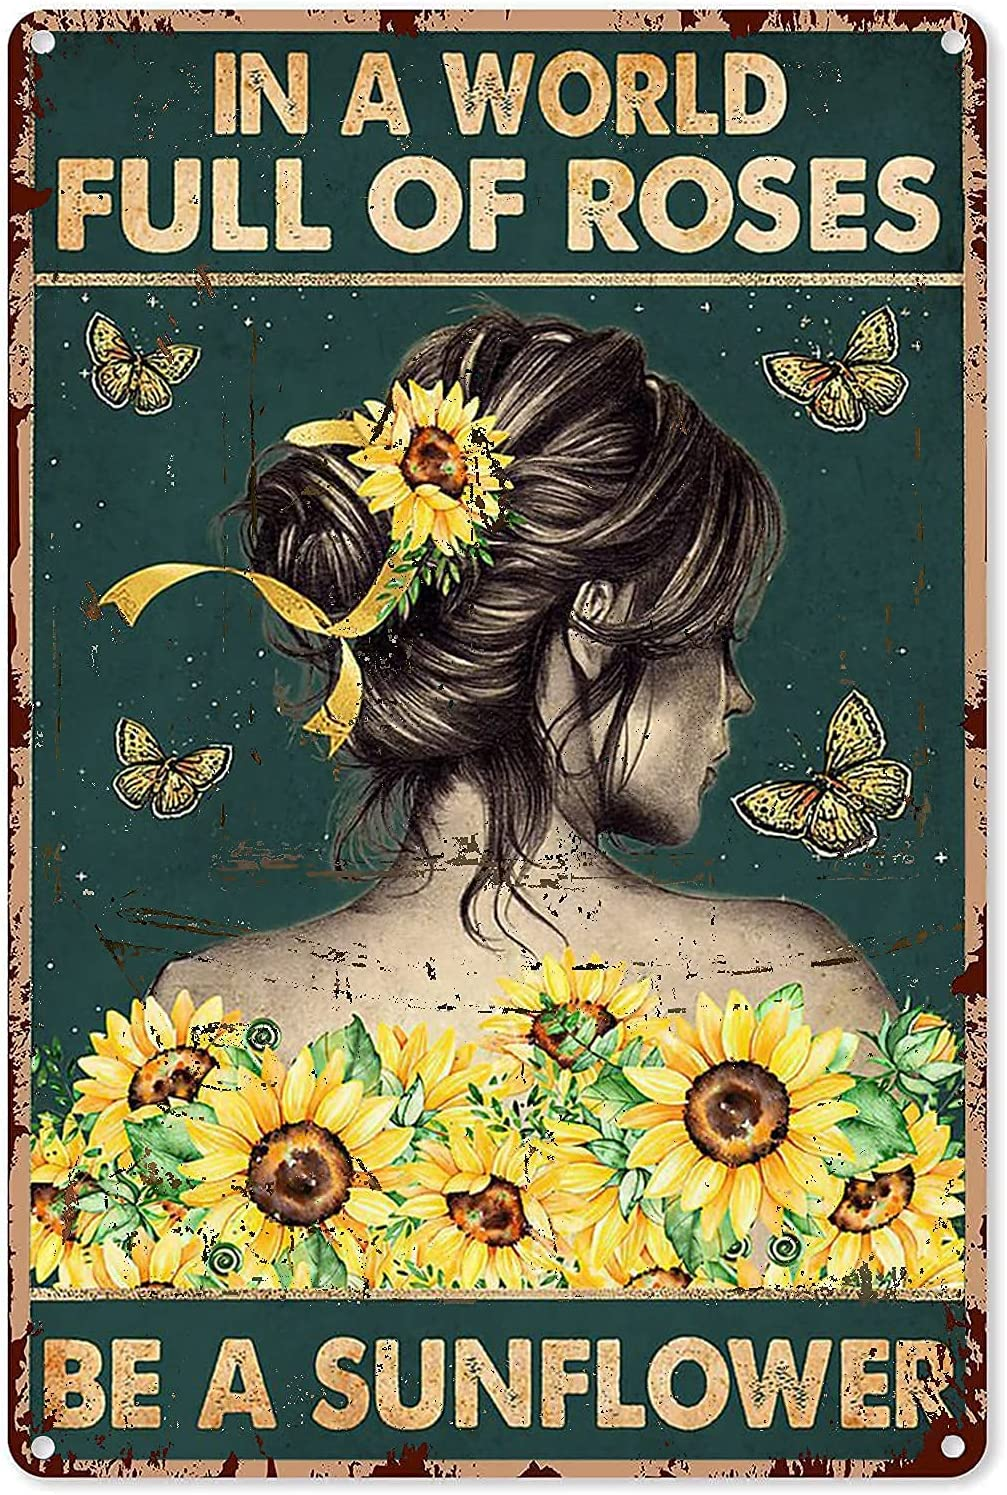 Vintage Metal Tin Sign Hippie Girl and Butterflies Sunflower Decor in A World Full of Roses Be A Sunflower Iron Painting for Home Kitchen Garden Wall Art Poster 8x12 Inch